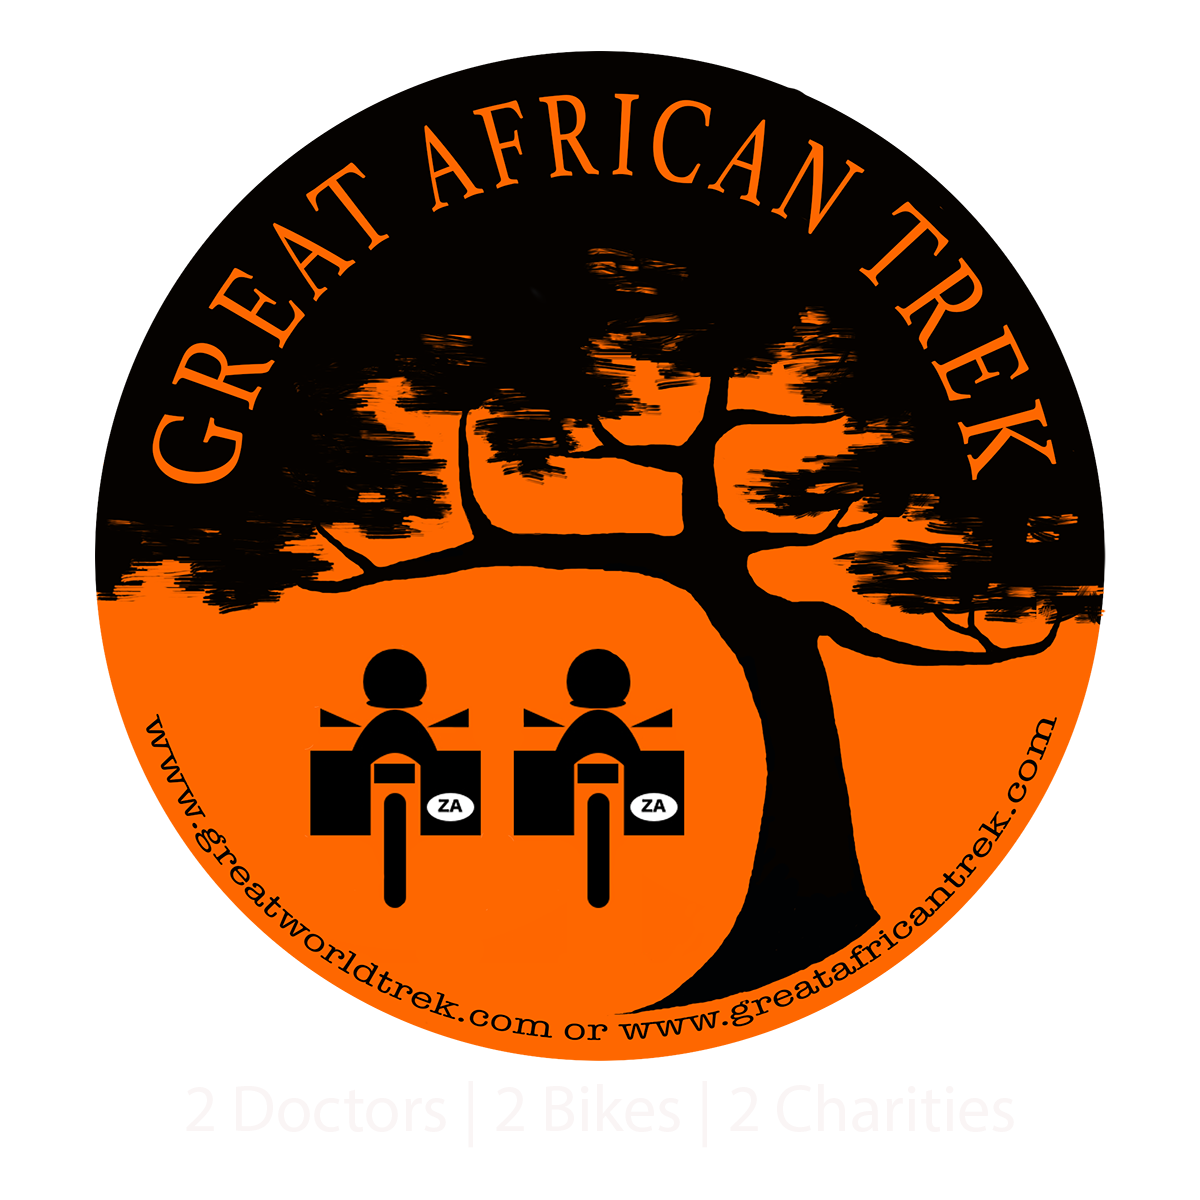 Great African Trek